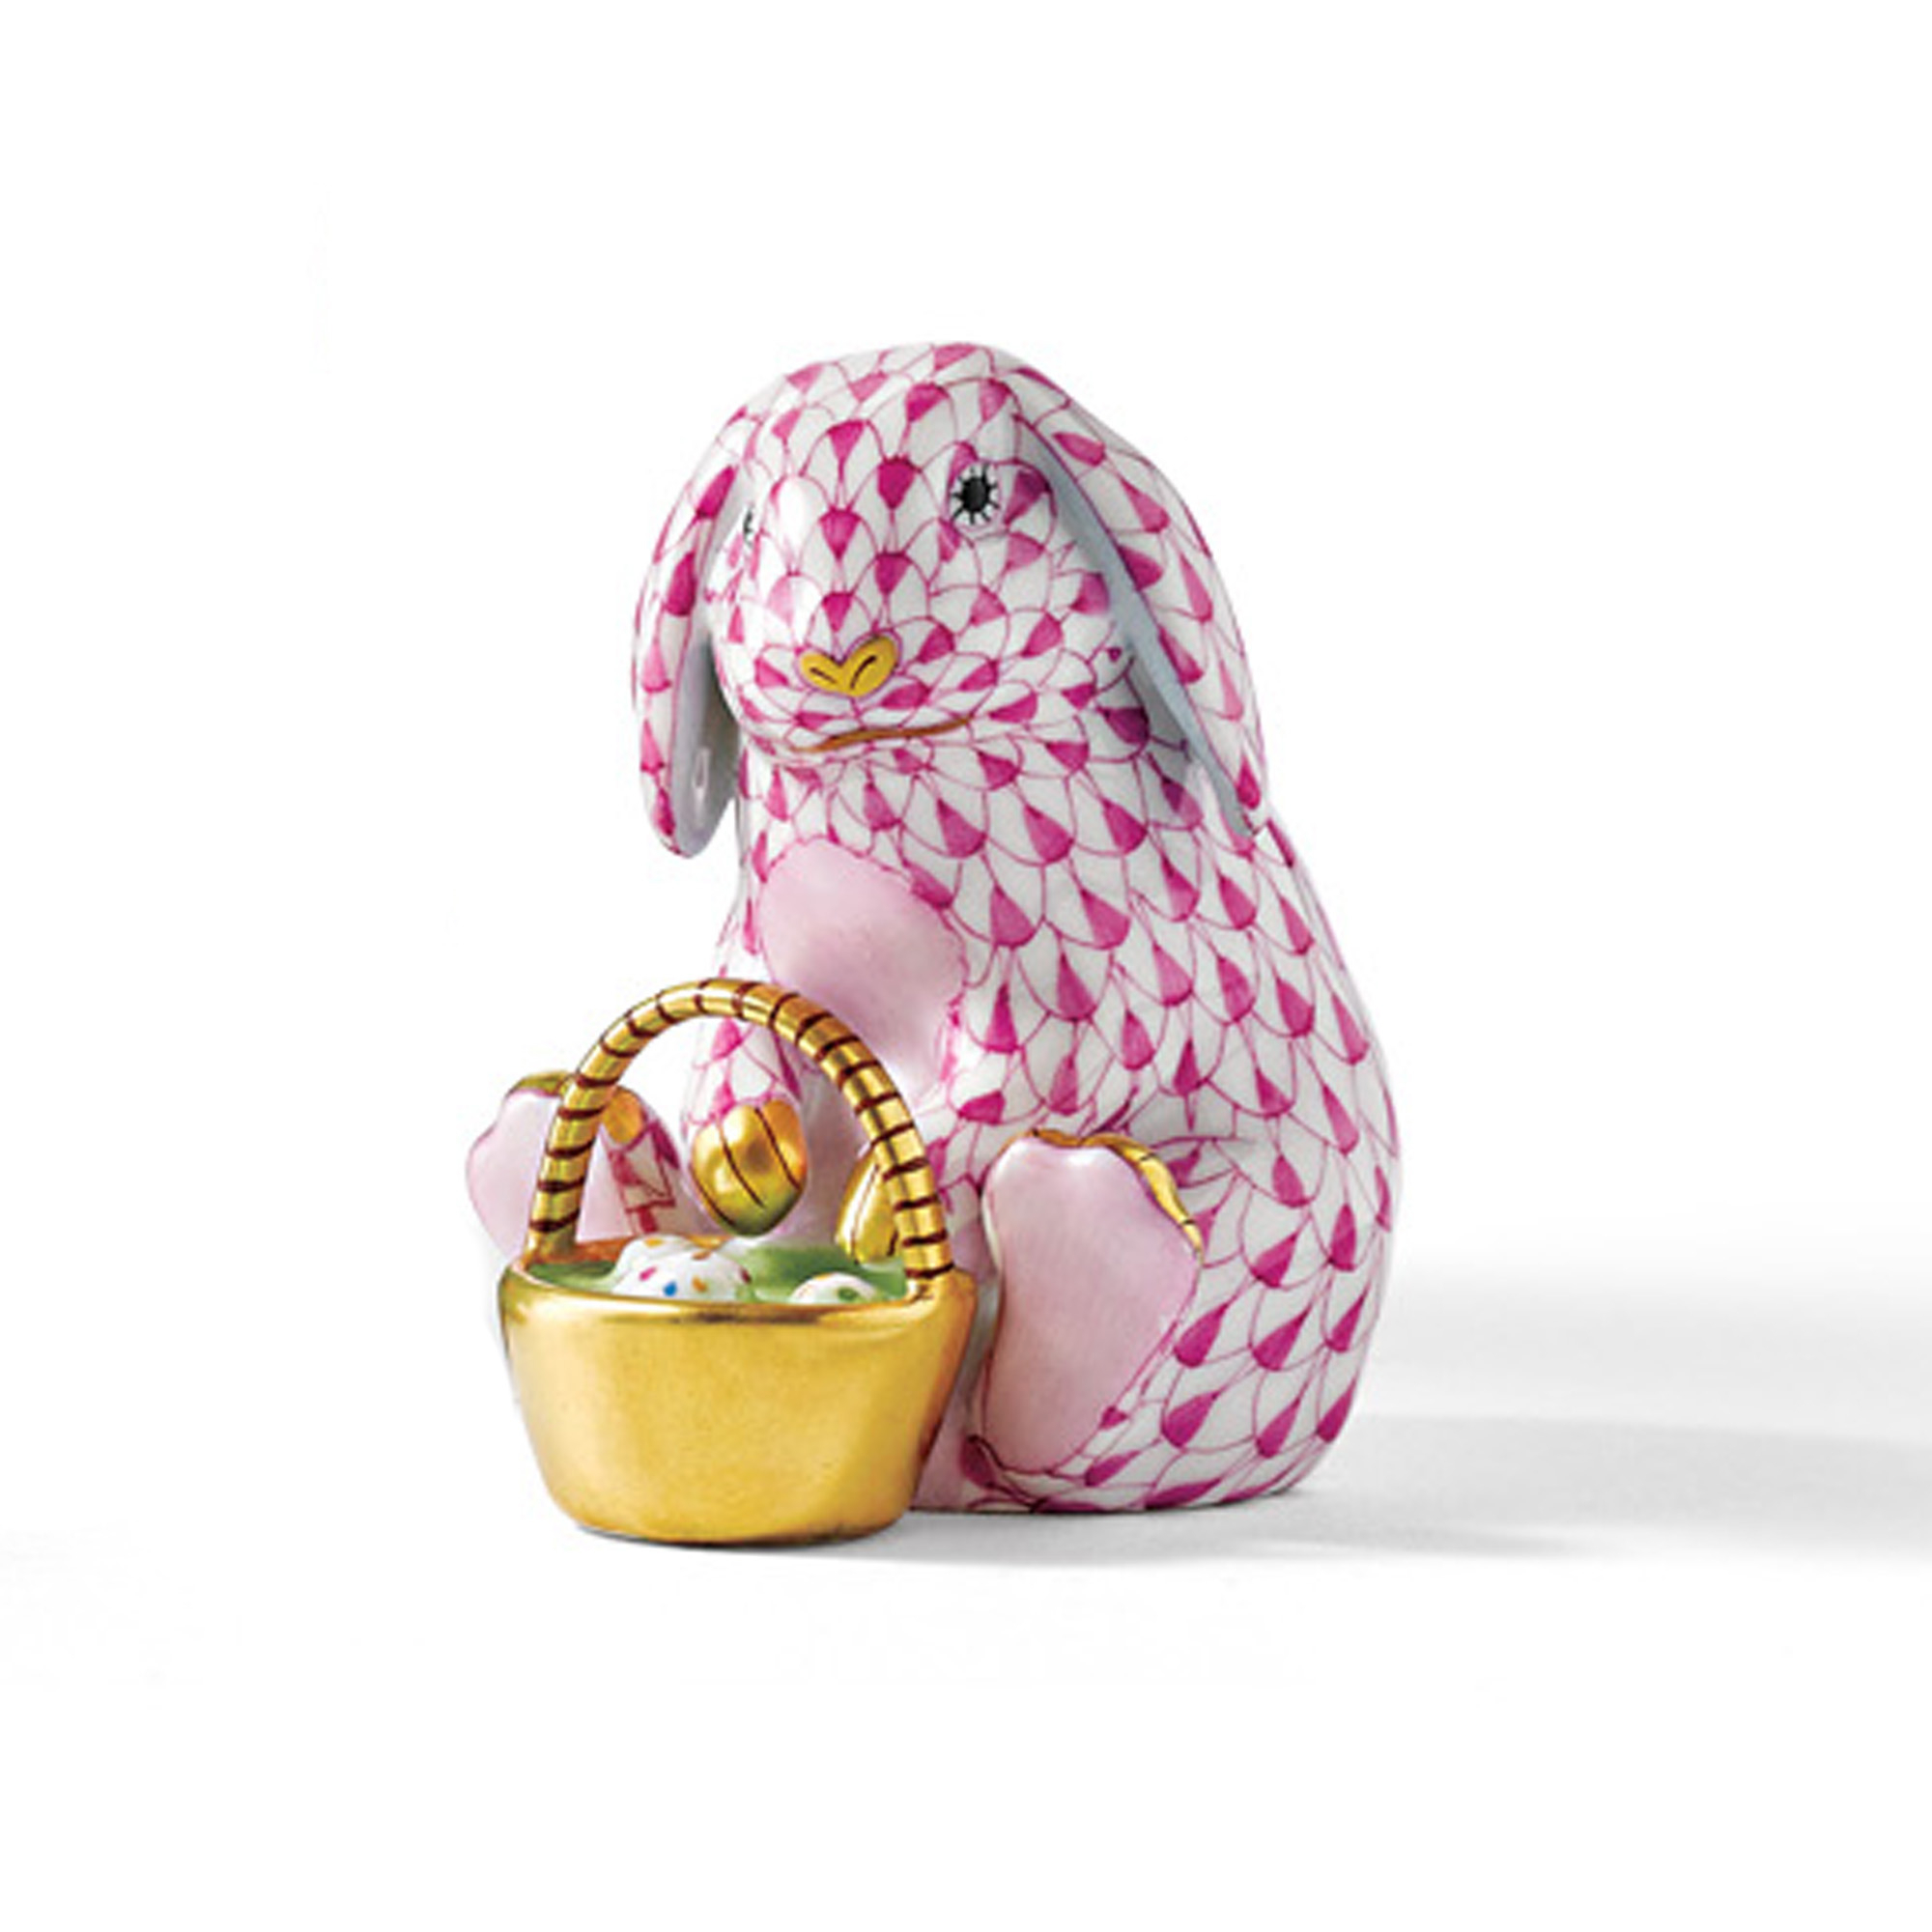 Herend Pink Eggstravagant Bunny